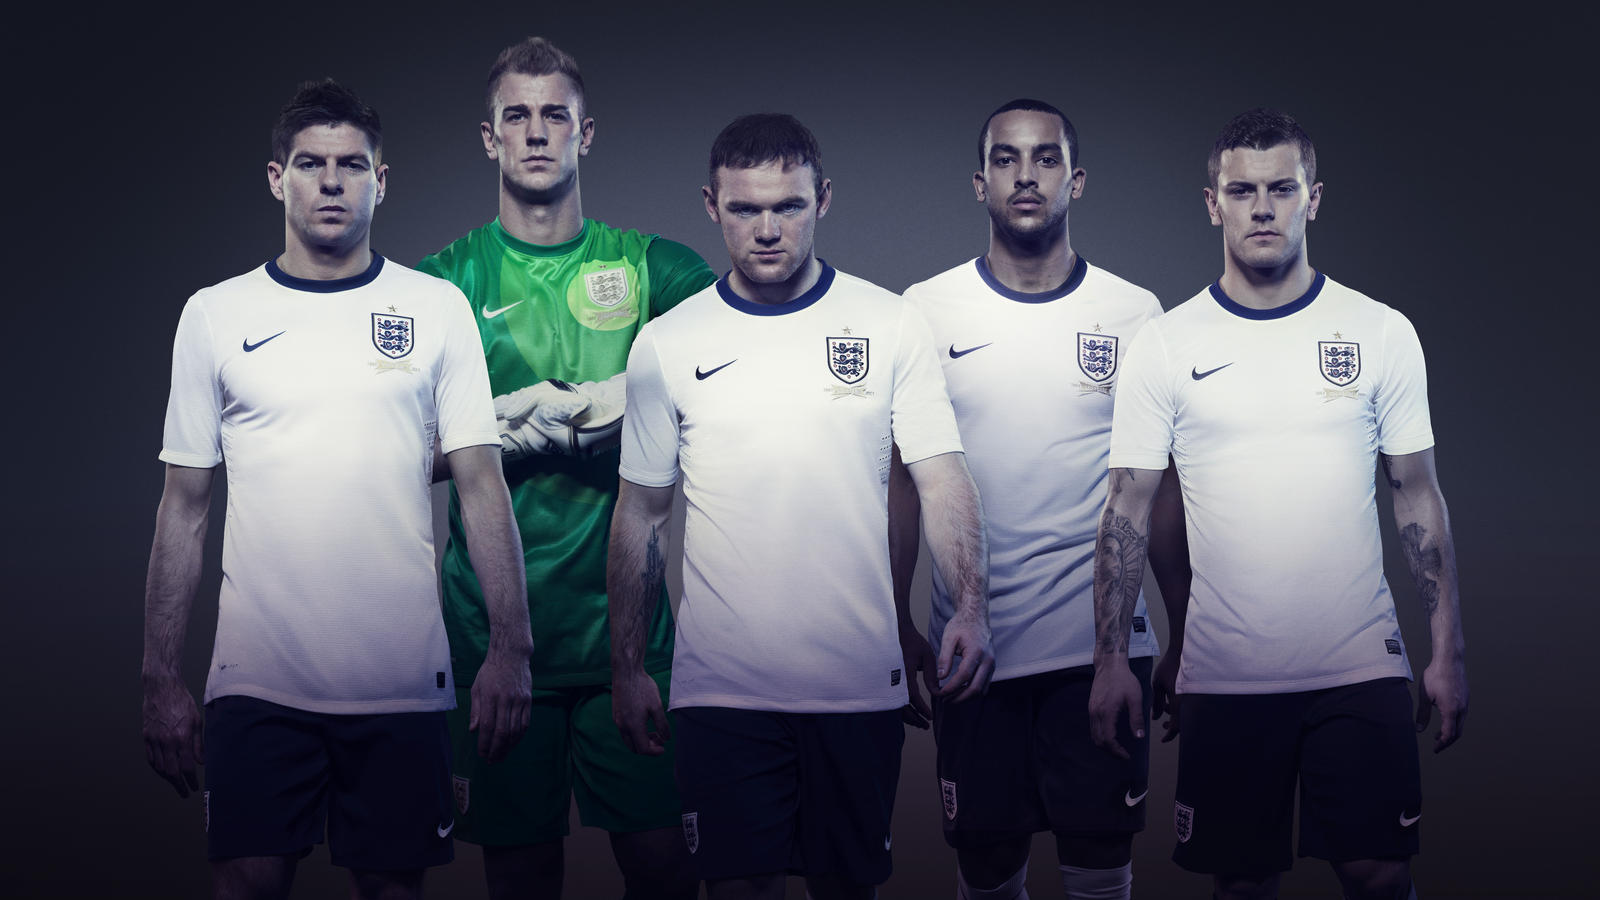 Nike unveils new England Home Kit. Classic look inspired by England's first  kit to celebrate the Football Association's ...